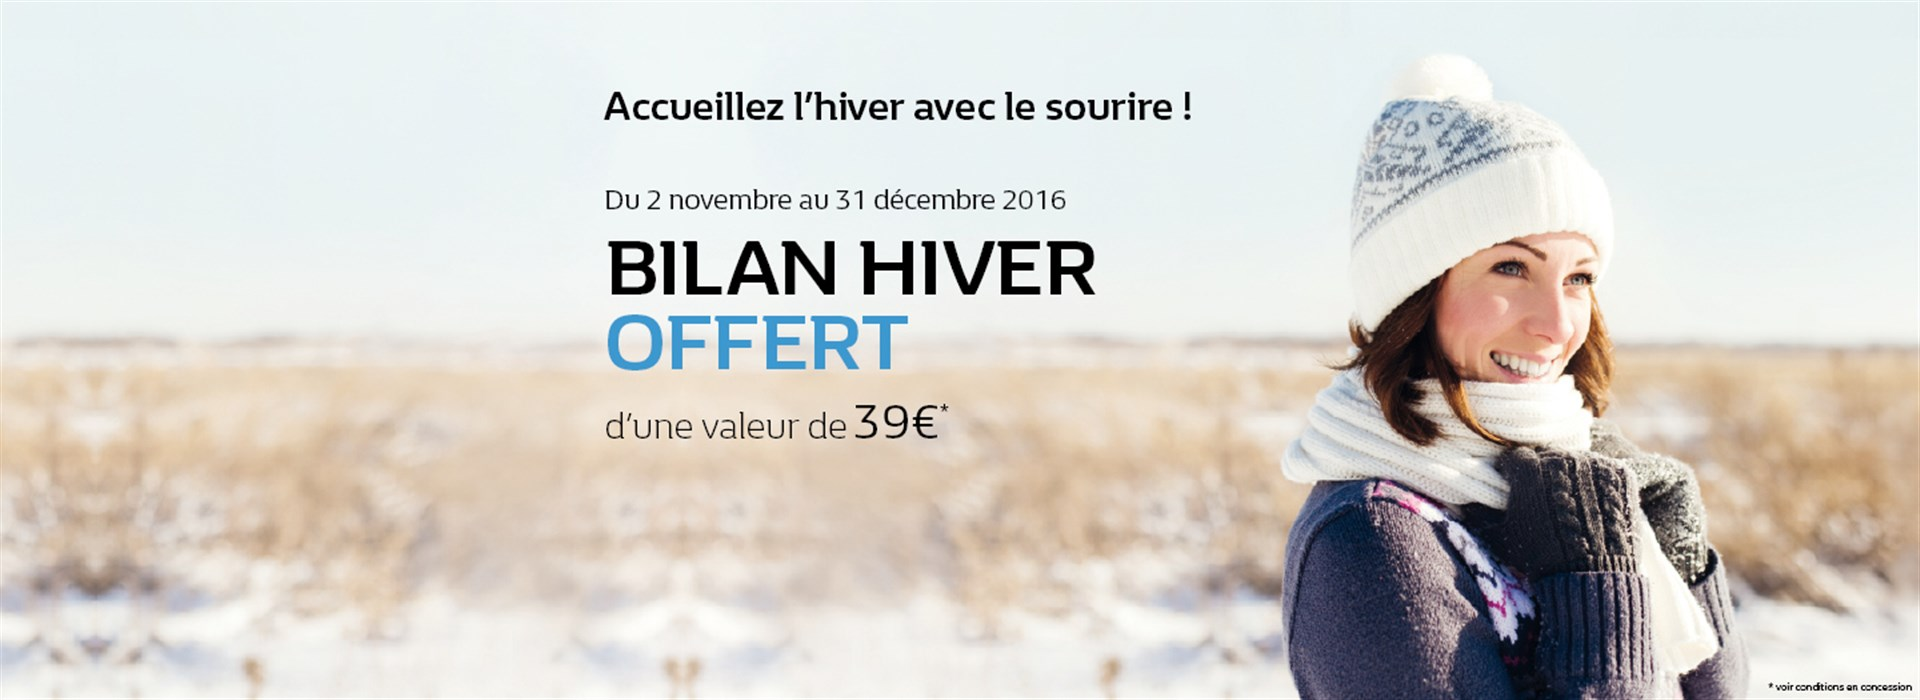 bilan hiver offert renault chambery. Black Bedroom Furniture Sets. Home Design Ideas